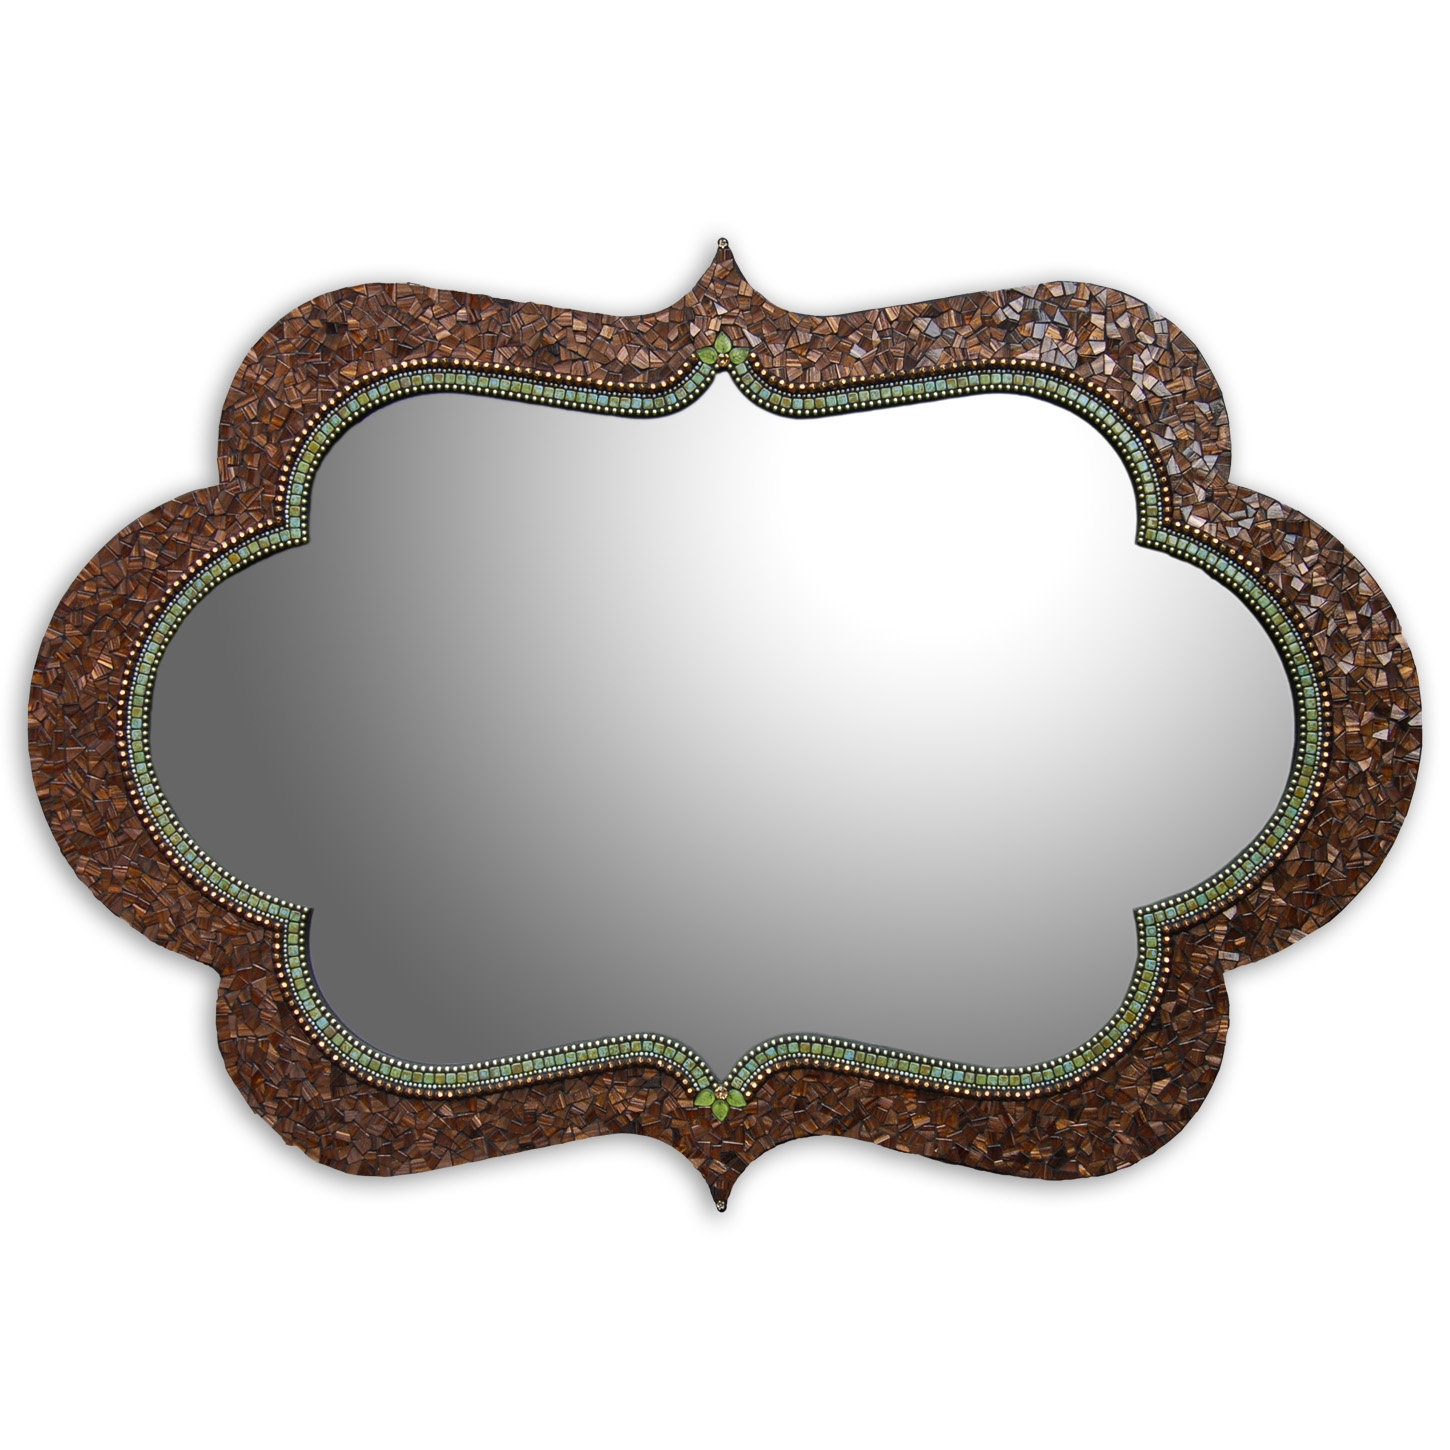 Bronze Cora Mirror Angie Heinrich Mosaic Mirror Artful Home For Bronze Mosaic Mirror (View 1 of 15)